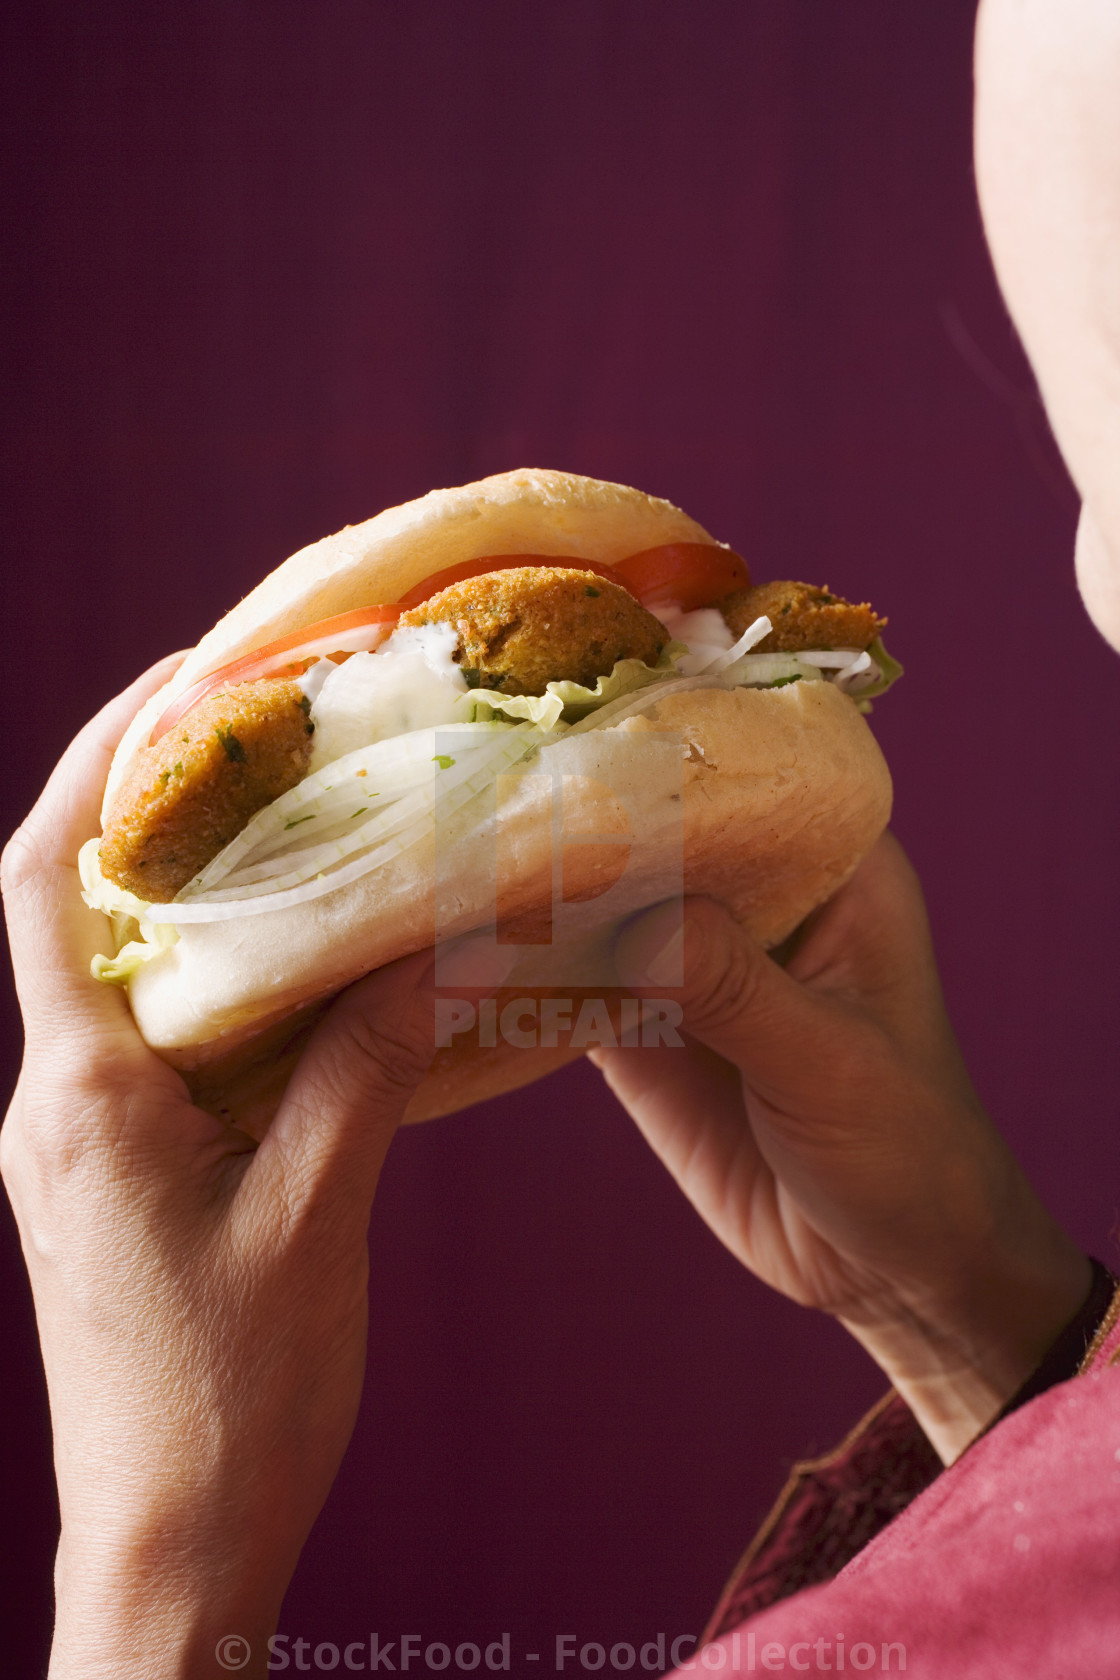 """""""Hands holding flatbread filled with falafel (chick-pea balls)"""" stock image"""